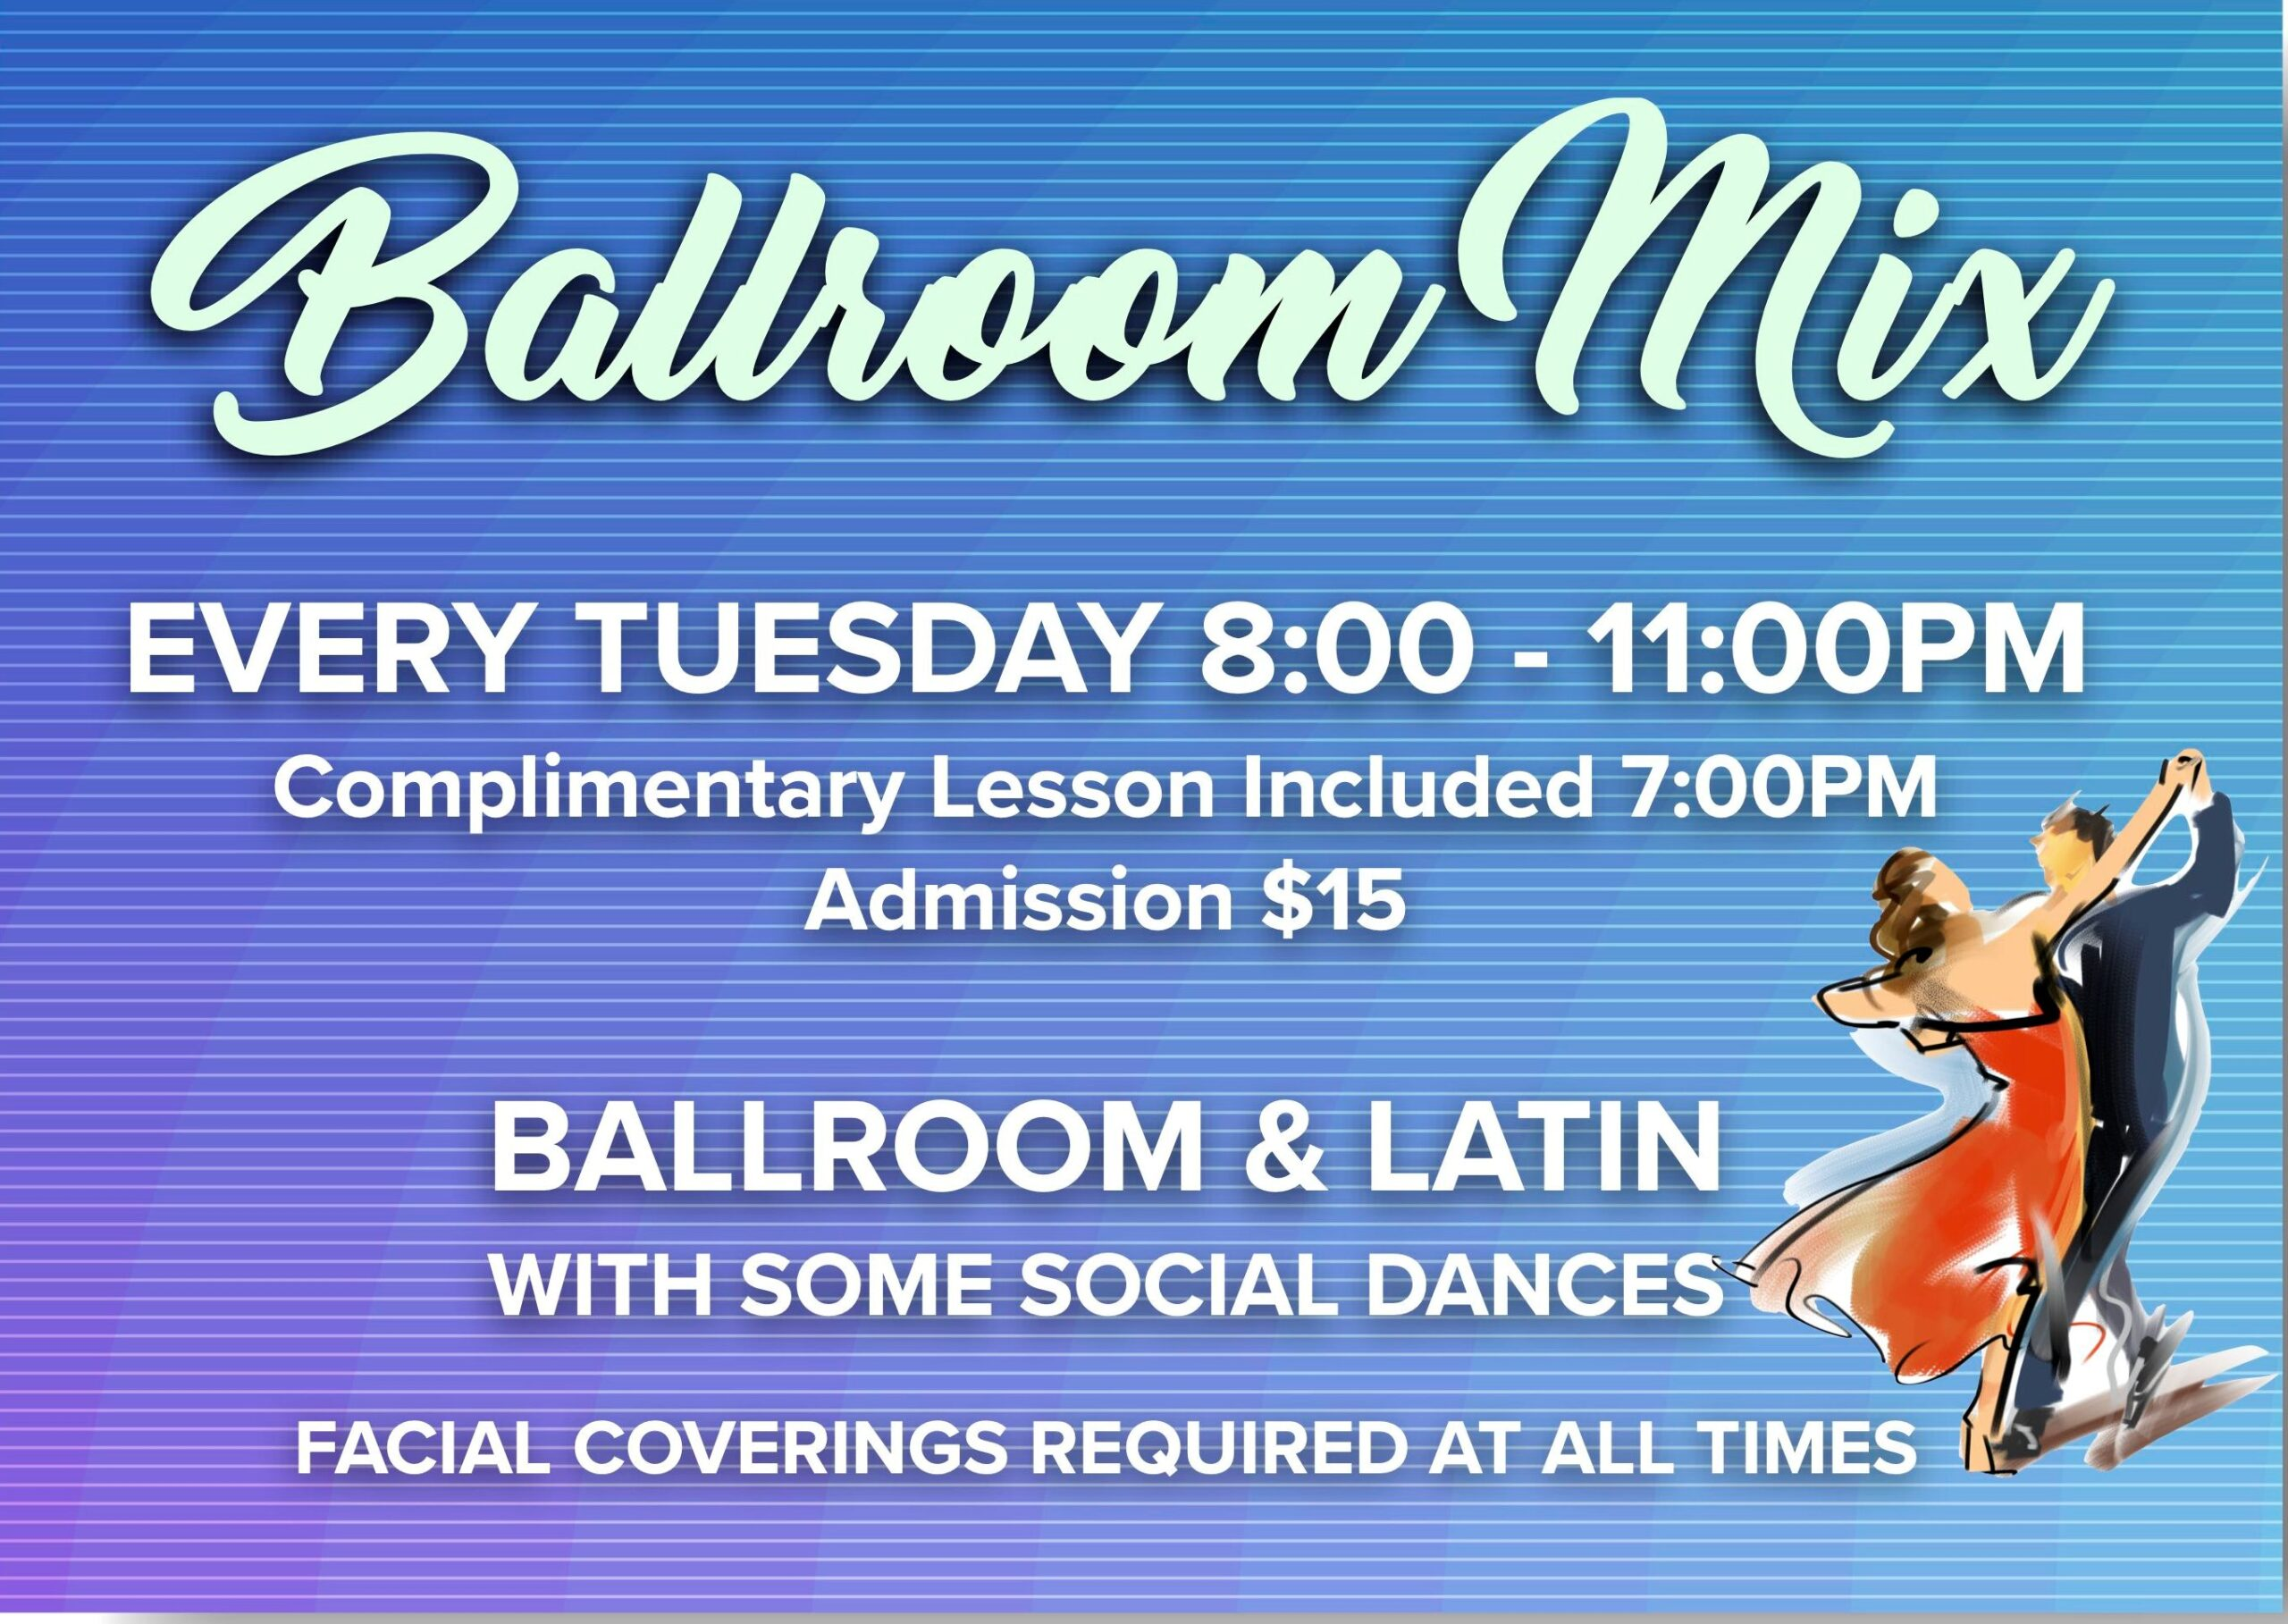 Ballroom Mix Every Tuesday Night at Goldcoast Ballroom, Starting in October, 2020